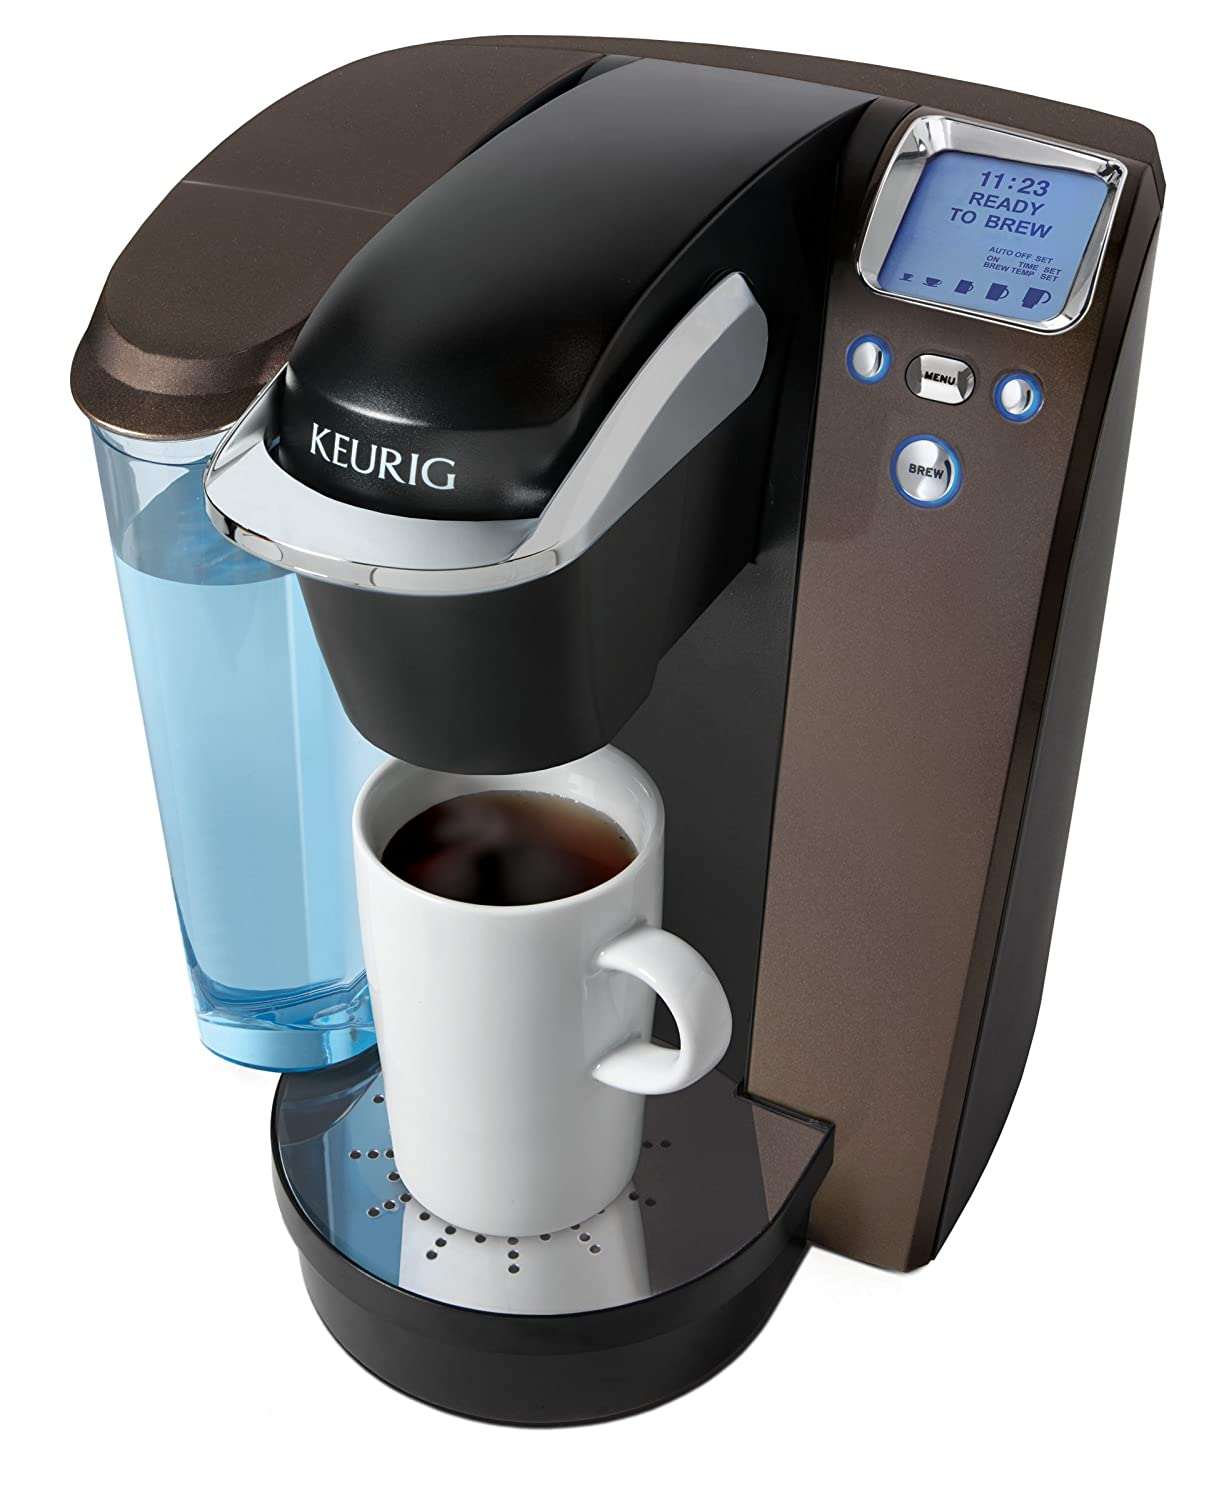 Keurig Coffee Maker Not Enough Water : Keurig K75 Platinum Edition Coffeemaker Programmable Brewing System, Black eBay